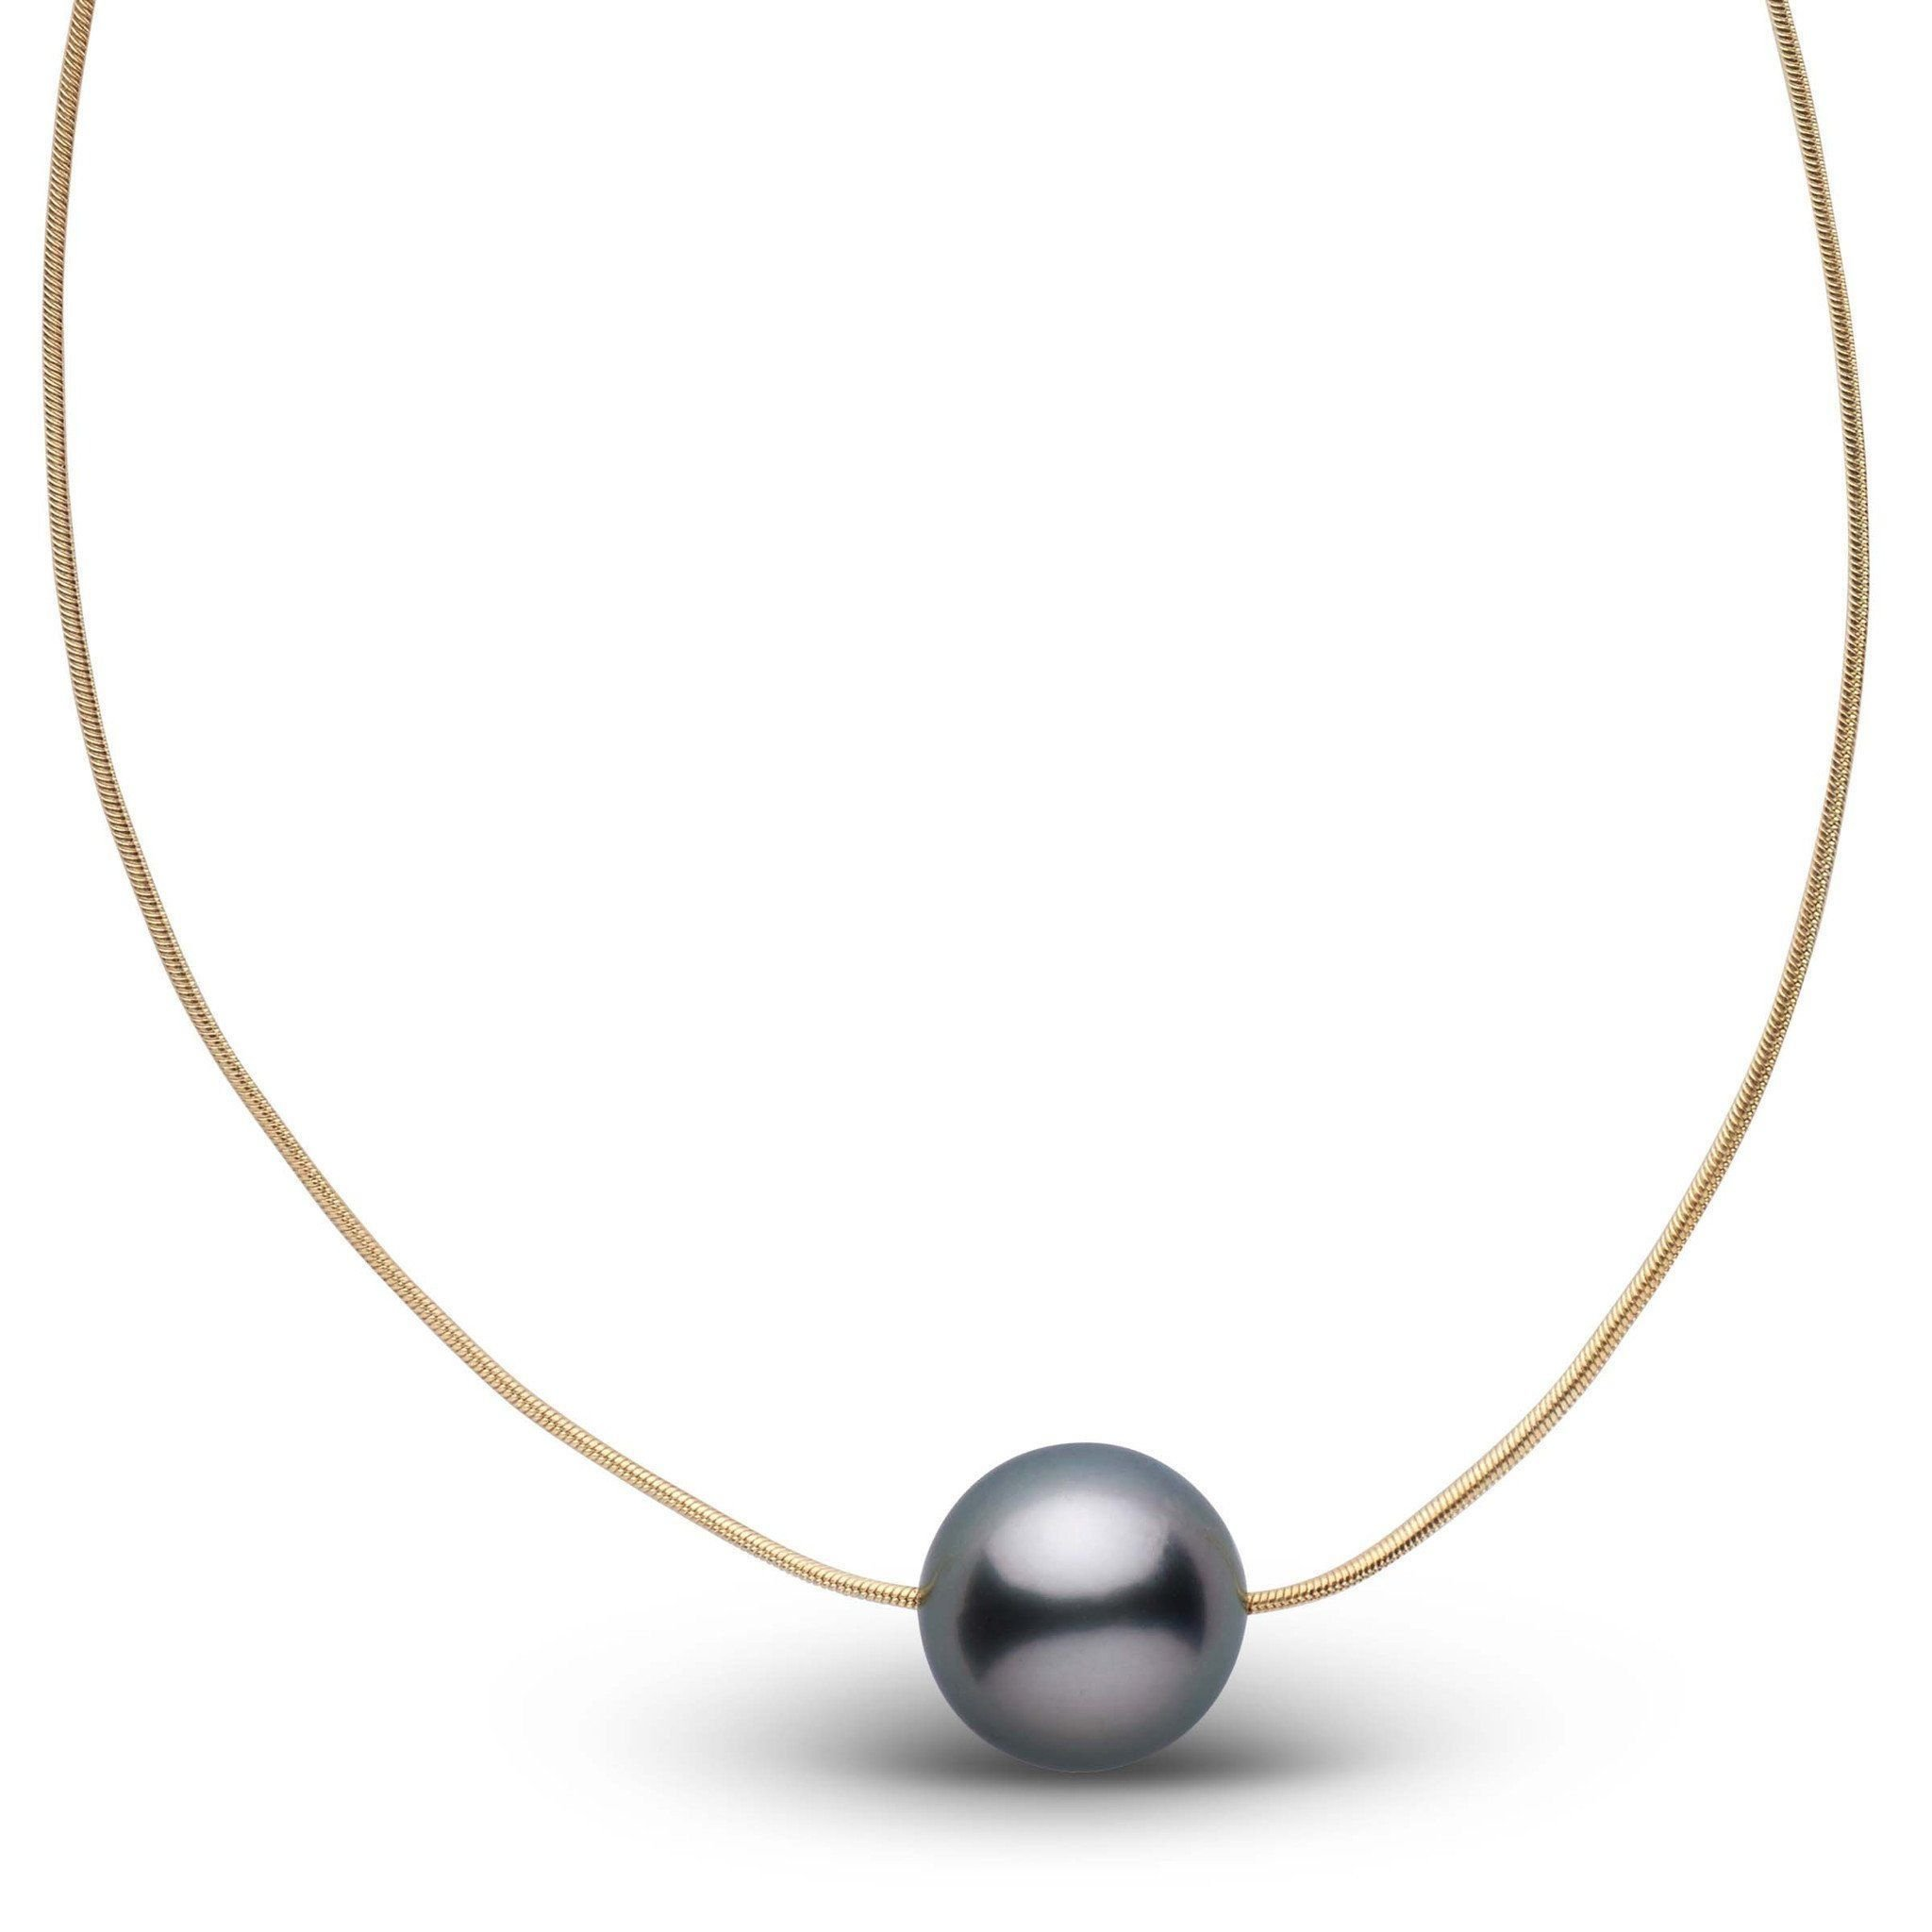 Solitaire Collection 10.0-11.0 mm Tahitian Cultured Pearl Necklace - Yellow Gold - 16 Inch